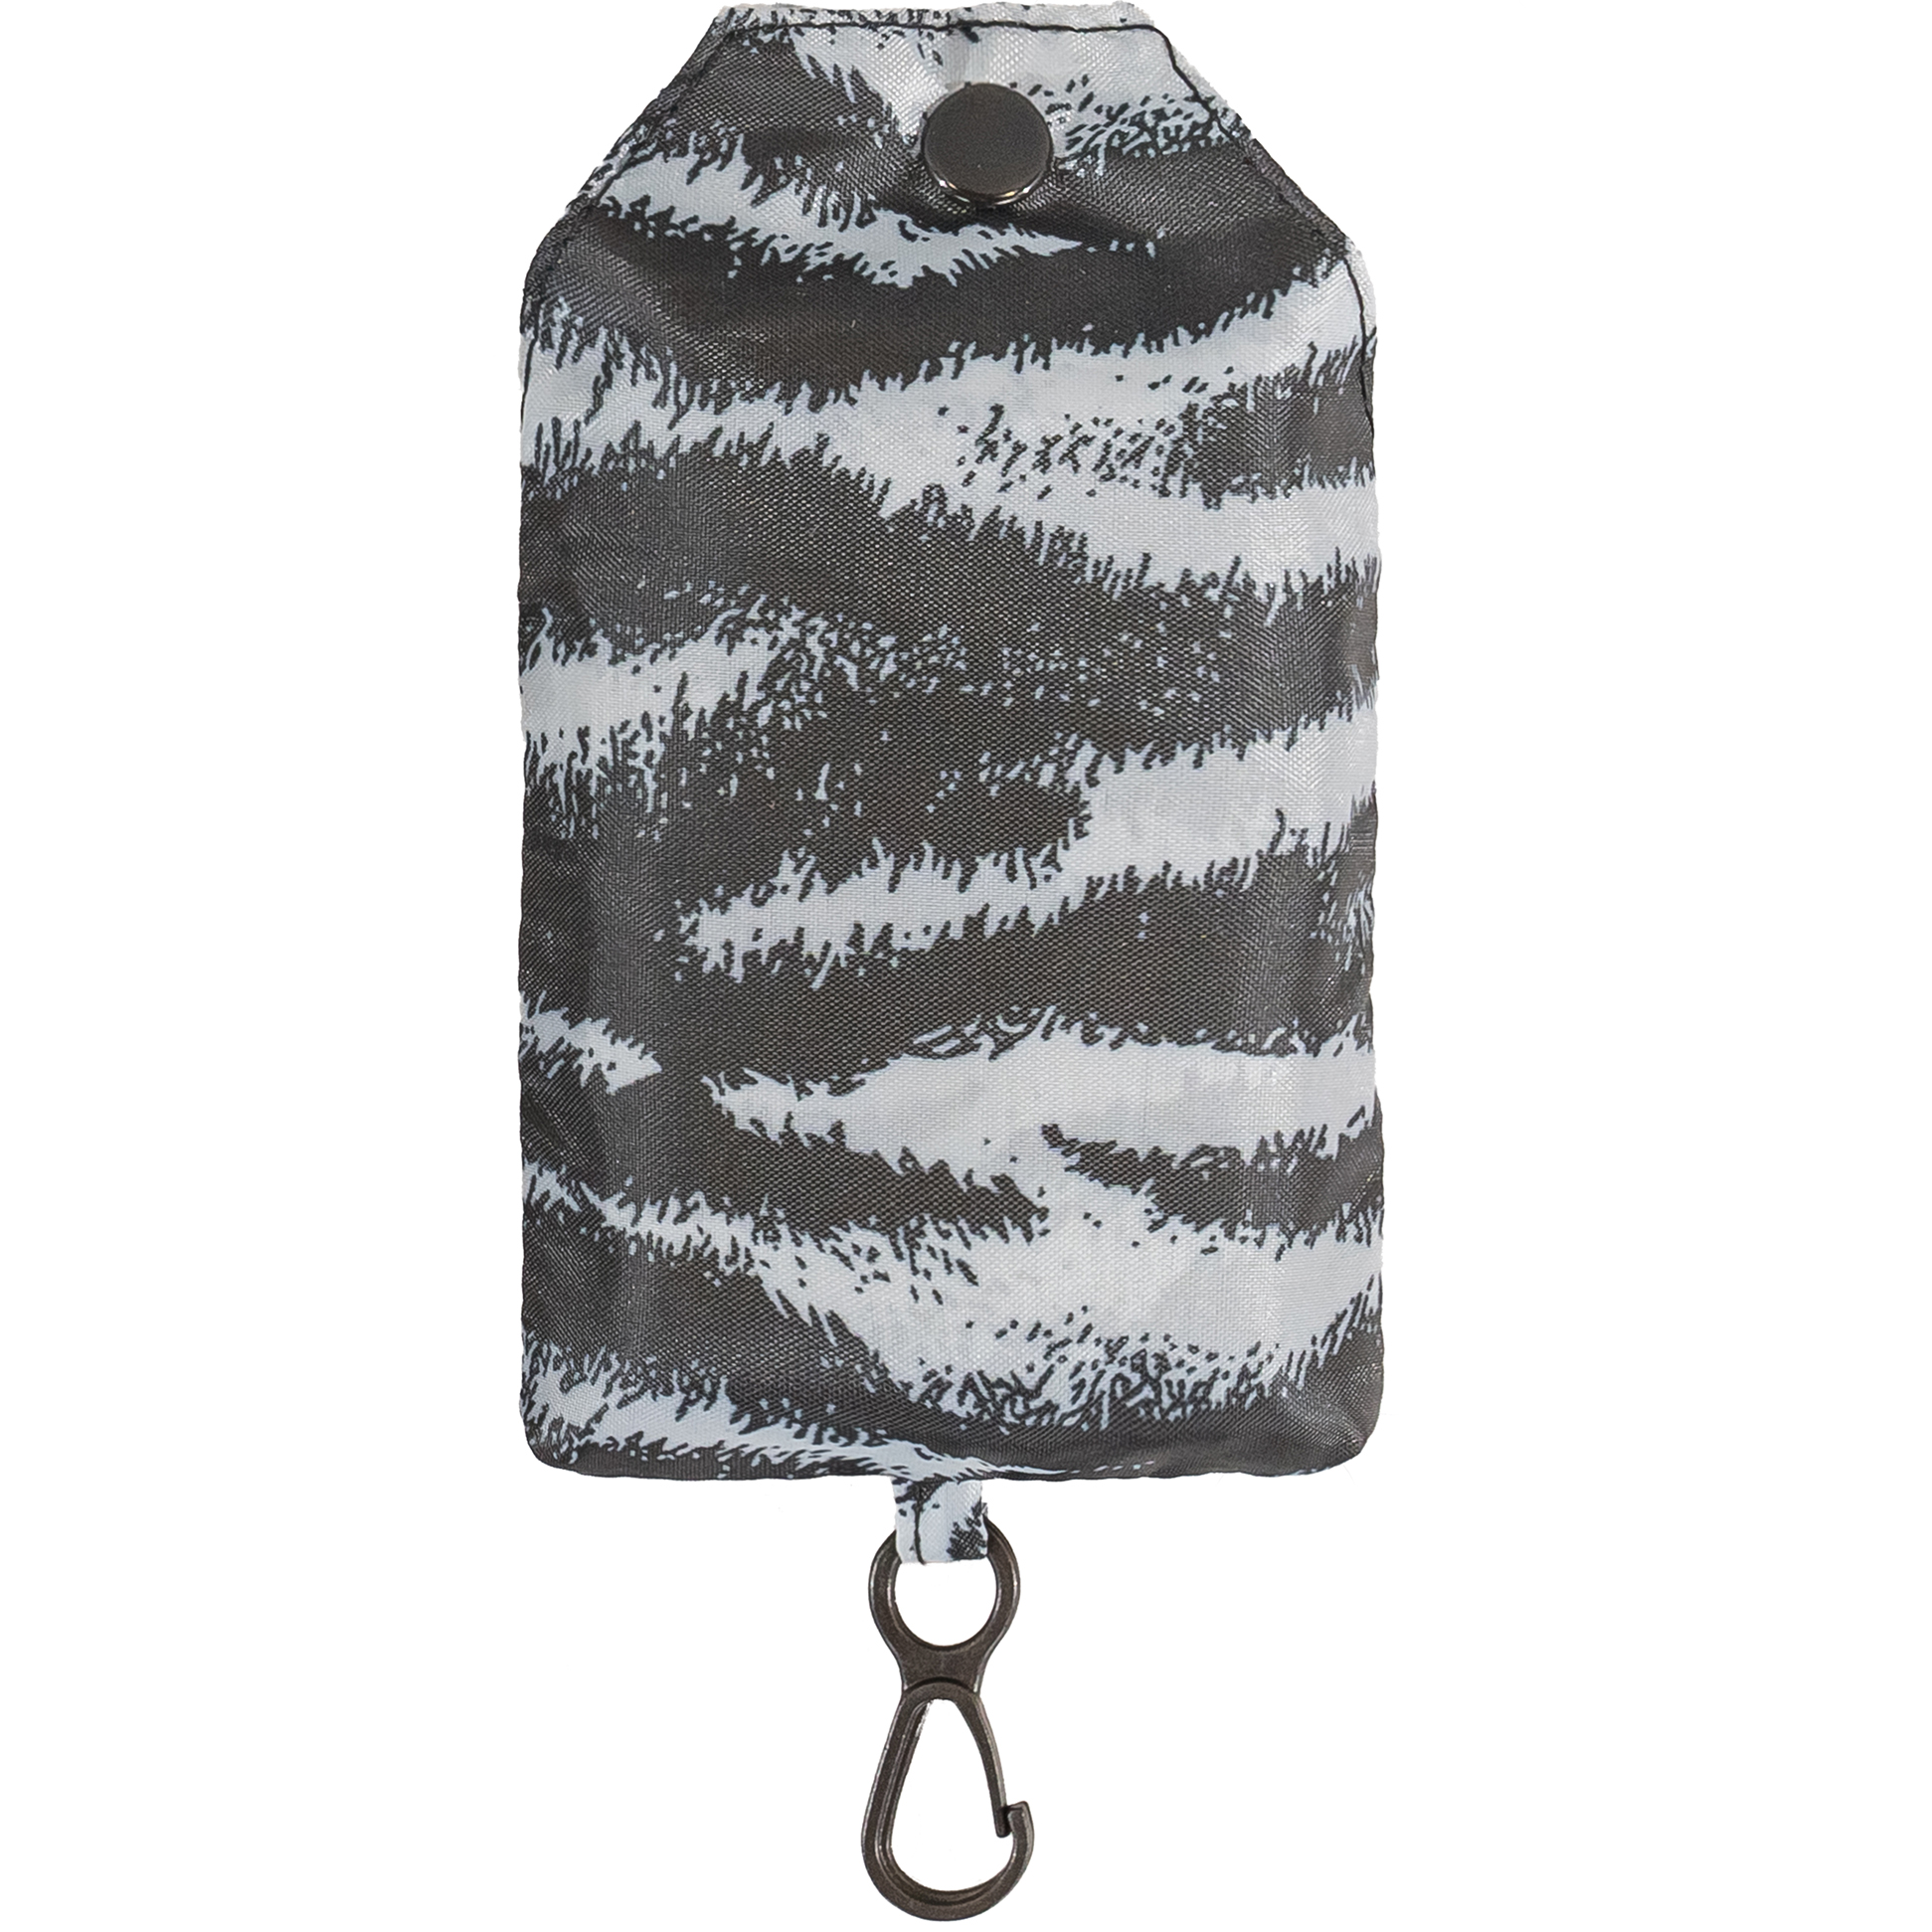 Zebra Print Reusable Shopping Bag (CB019)